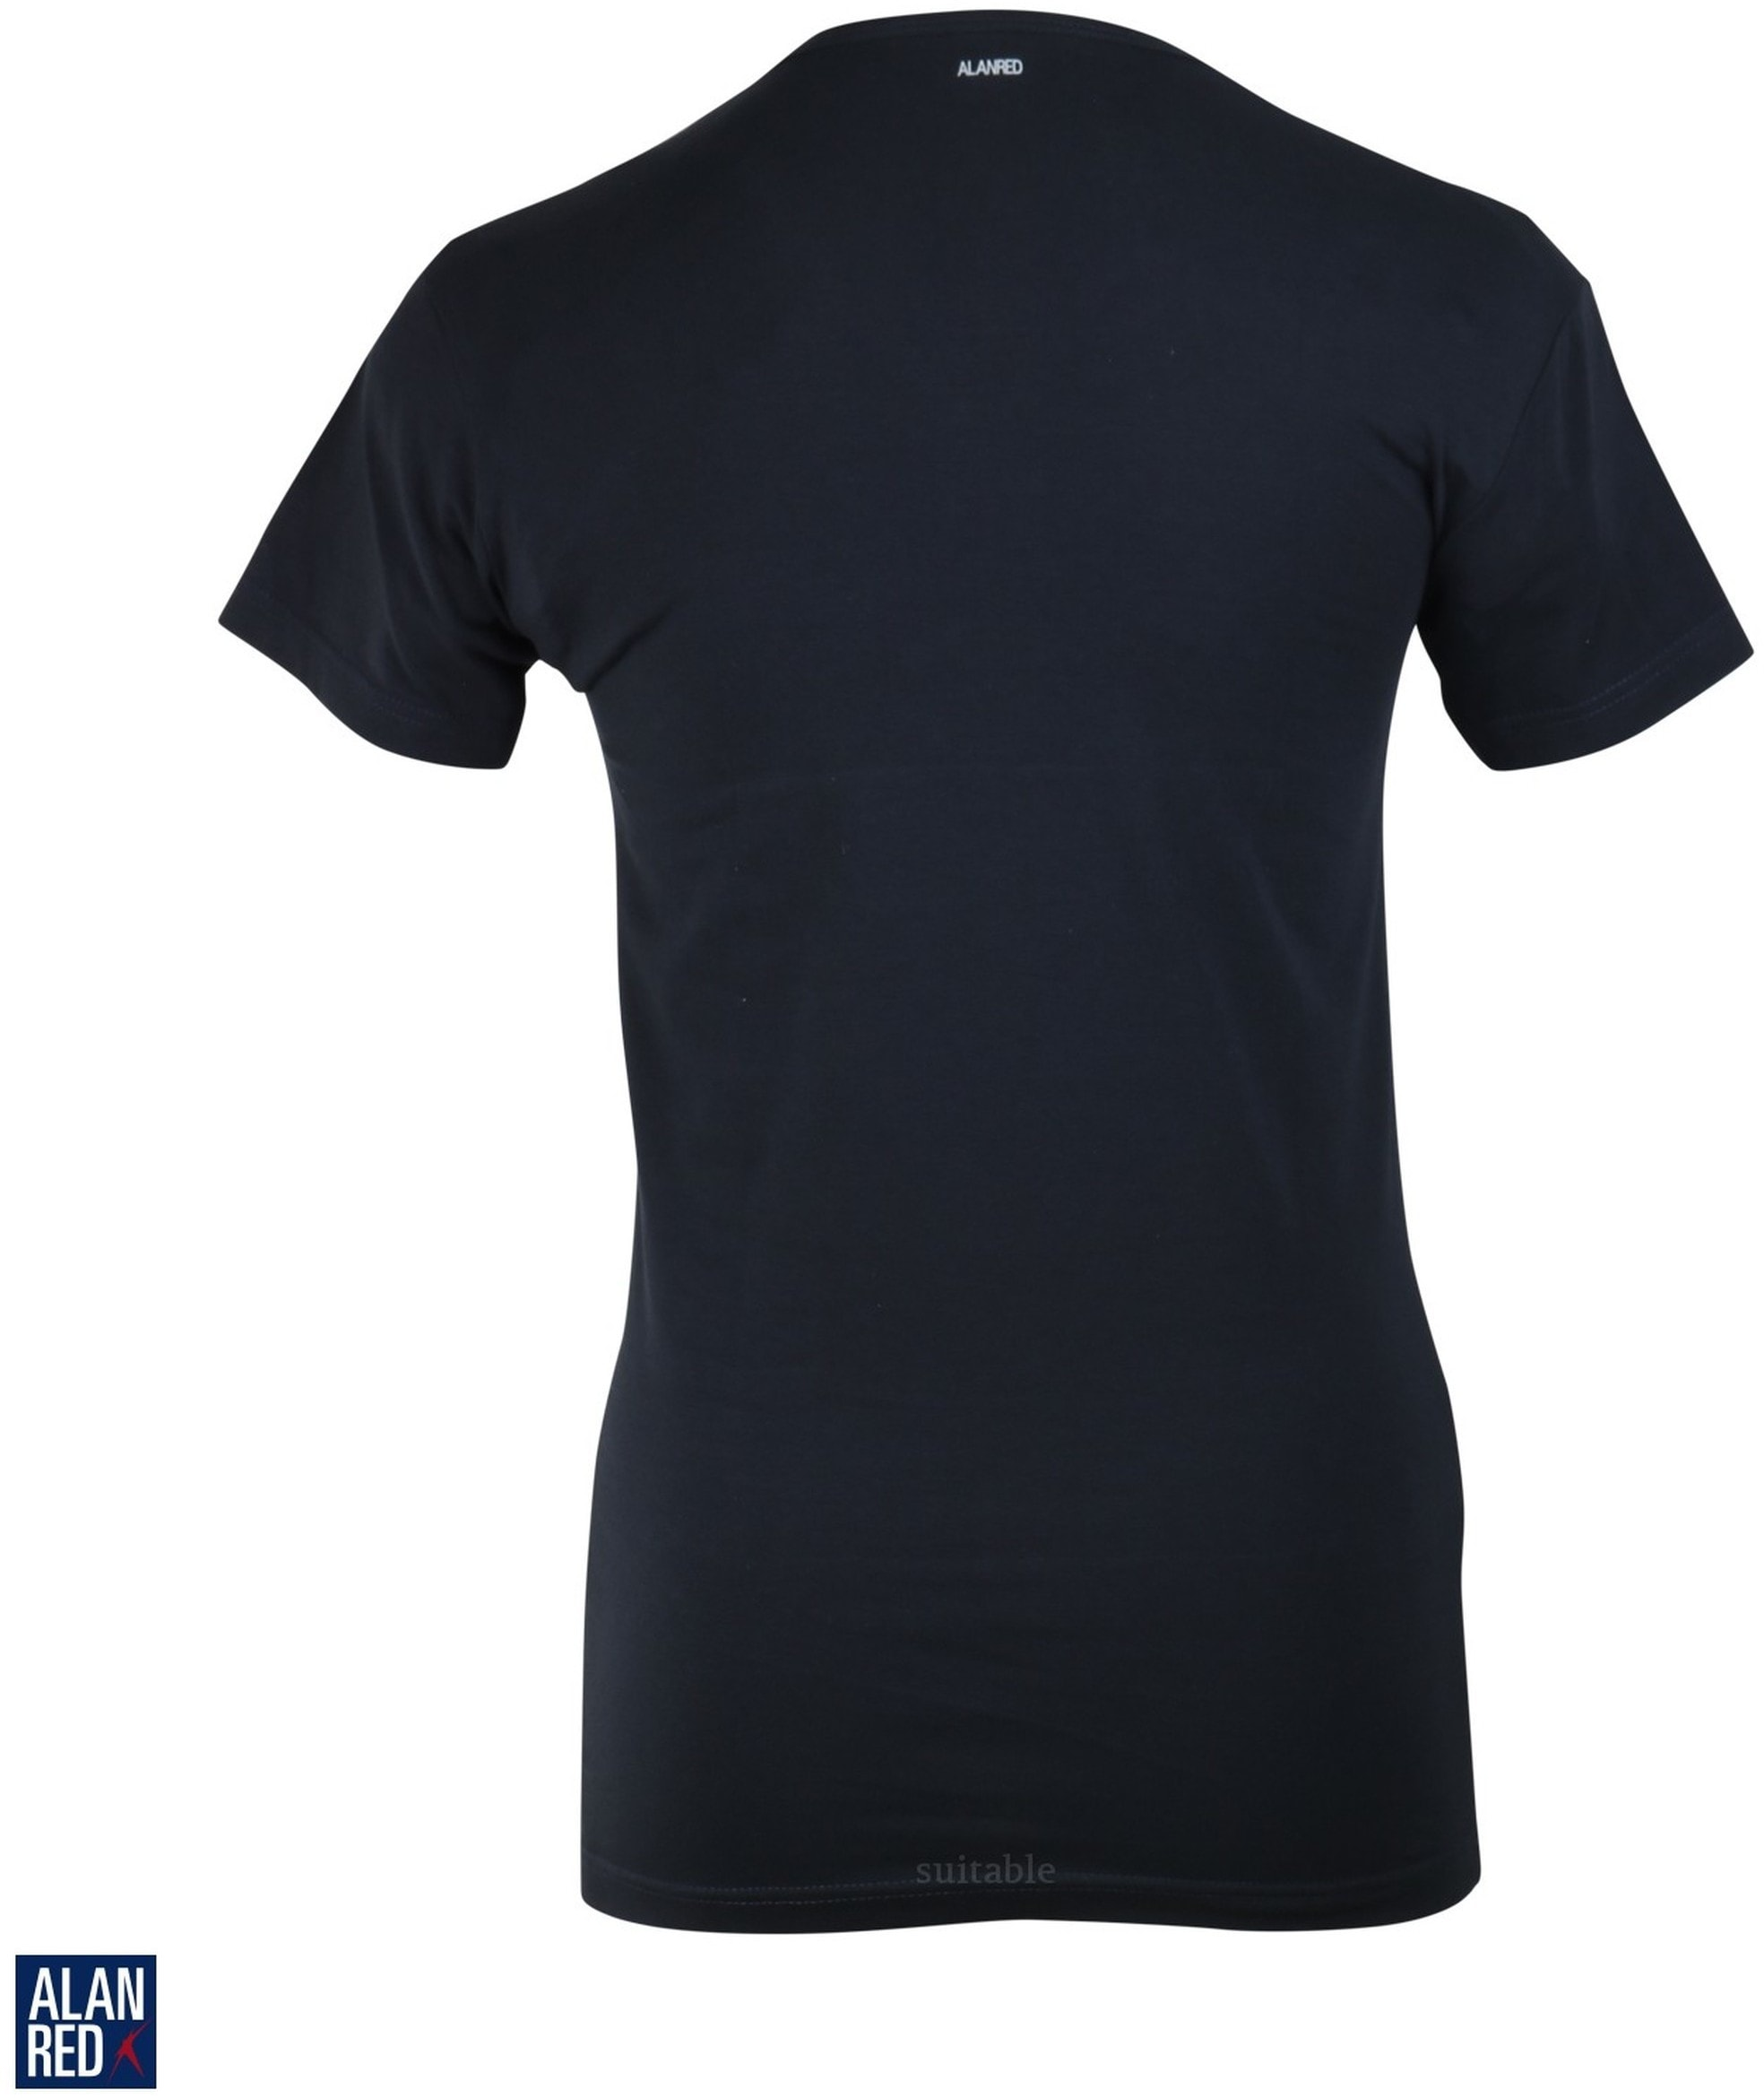 Alan Red Oklahoma Stretch Navy (1pack) foto 2